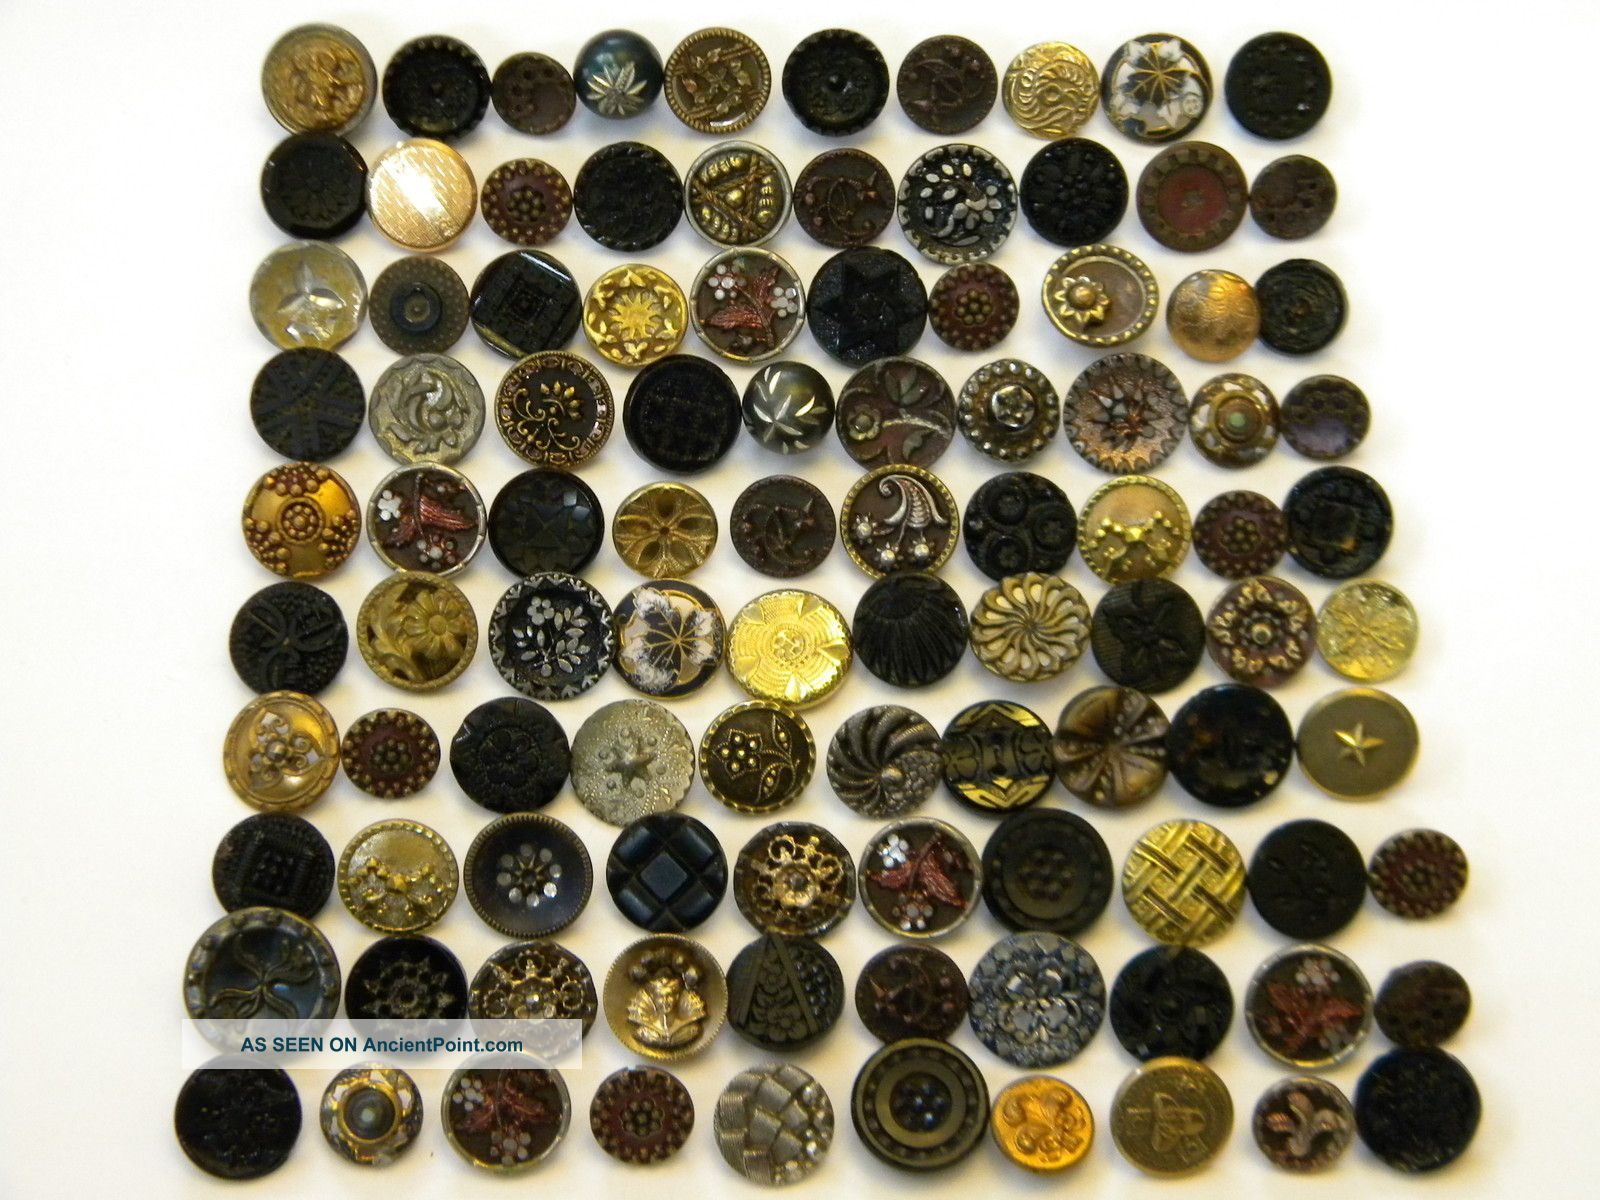 100 Antique & Vintage Metal Buttons Victorian Cut Steel Old Brass Picture Tinies Buttons photo